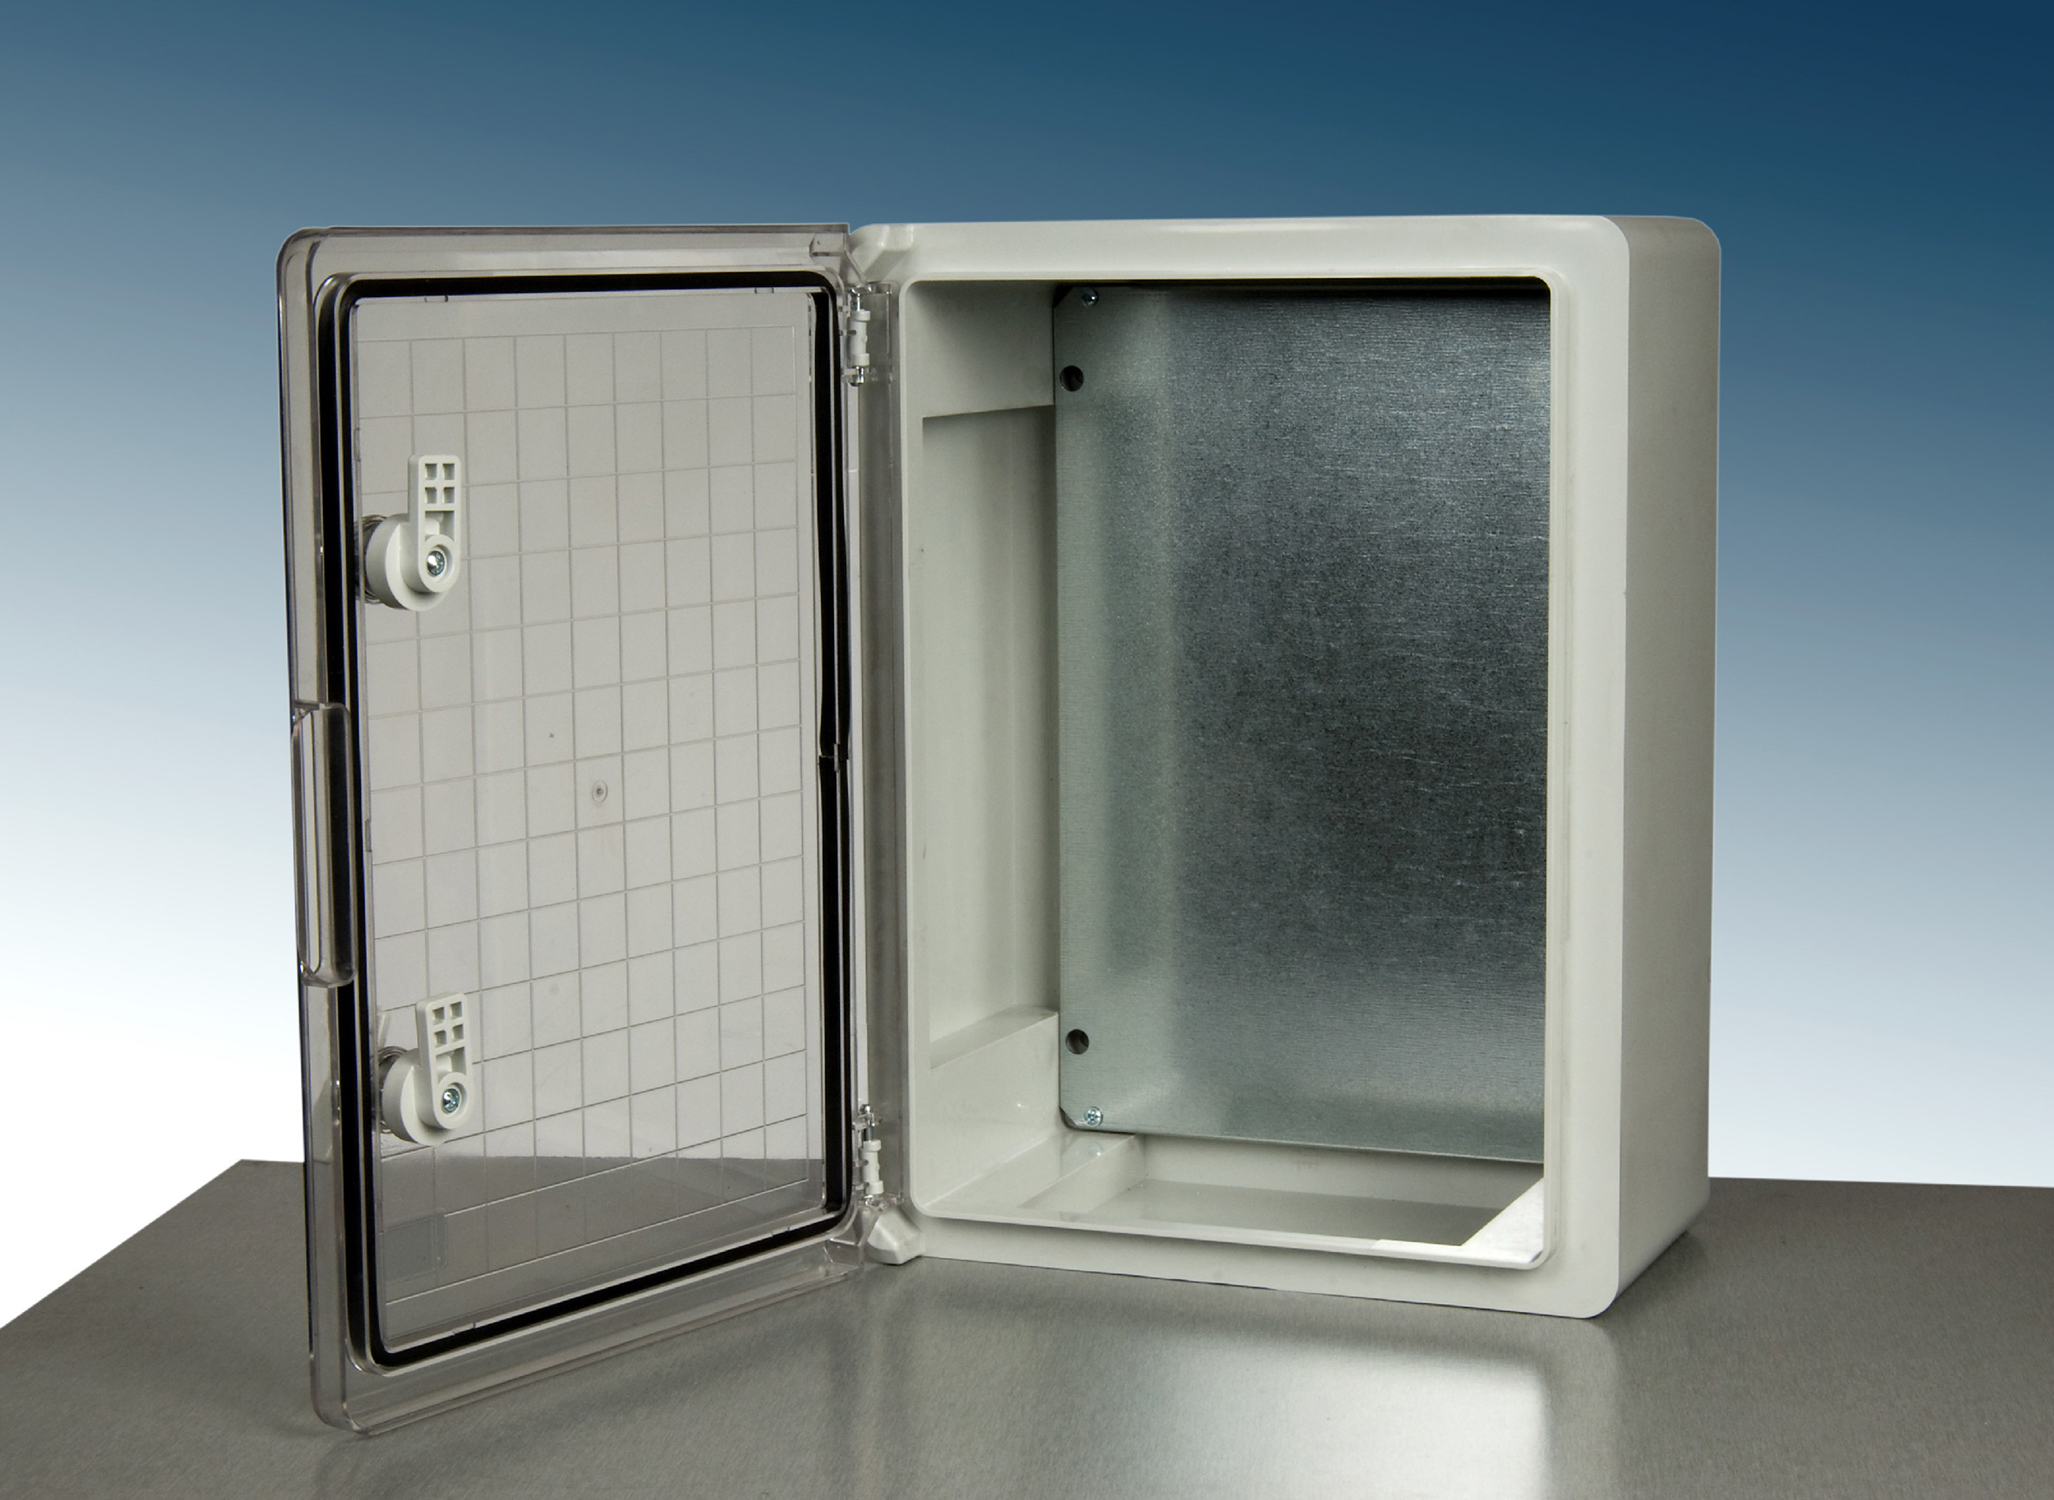 Hylec Apl Protect Against Hidden Costs With Hylec Apl